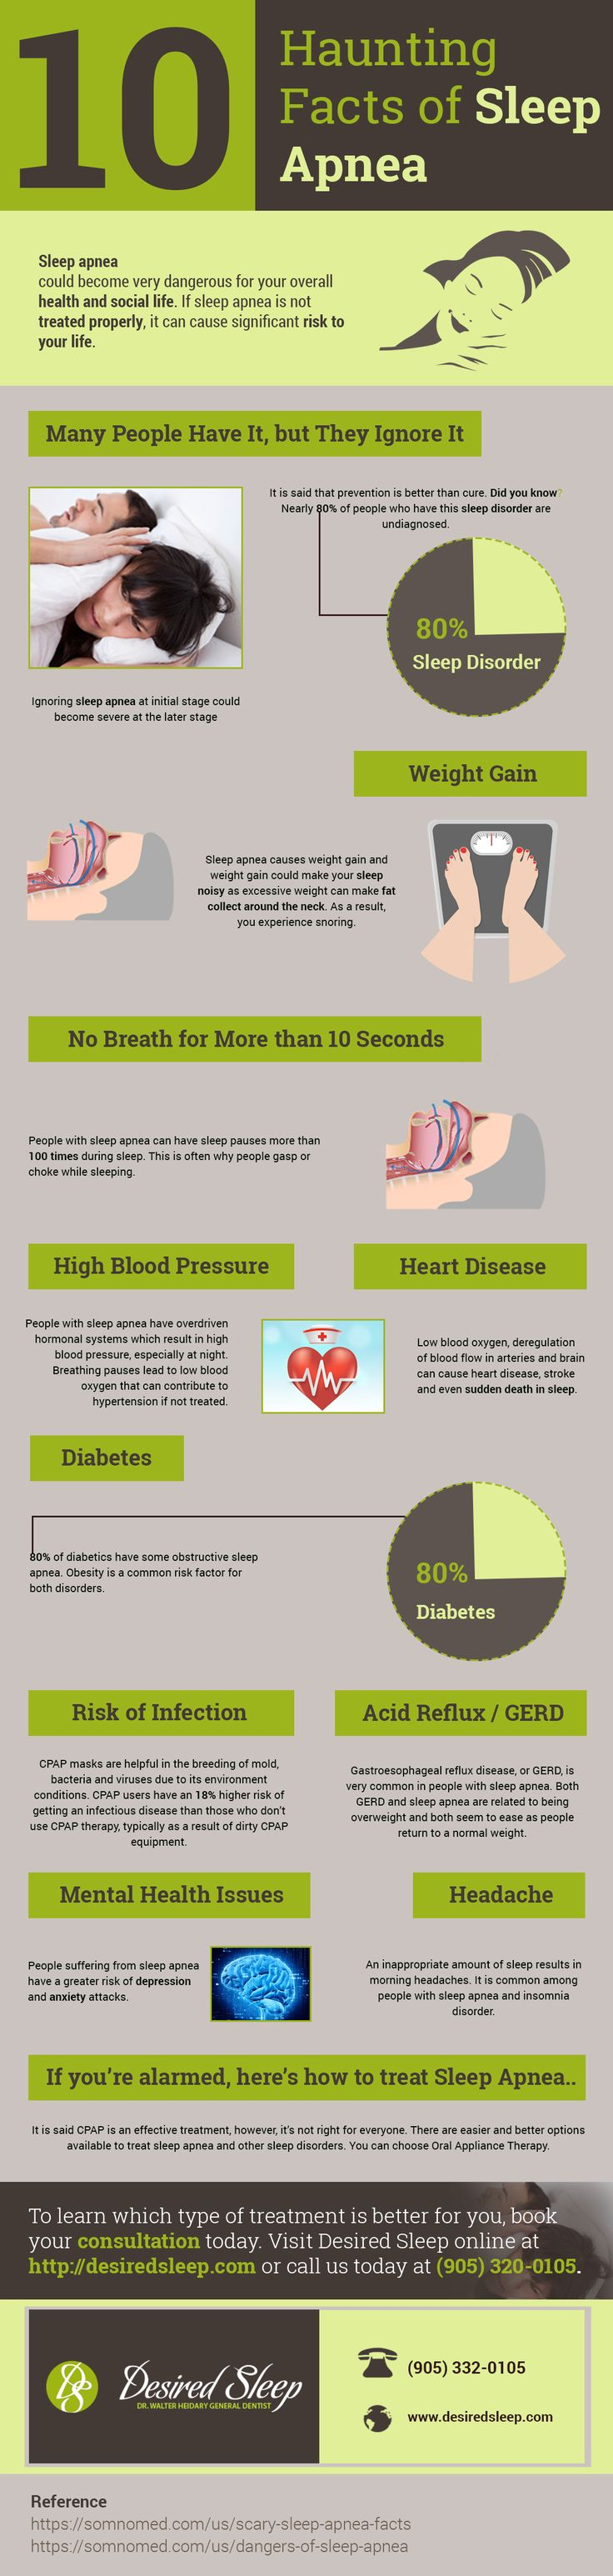 "10 Haunting Facts of Sleep Apnea.  Do you know how severe sleep apnea could become for your overall health? Learn the facts from this visual.  Learn More - http://desiredsleep.com  Call Us - 905-332-0105  ""Don't Let Sleep Apnea Haunt You"""